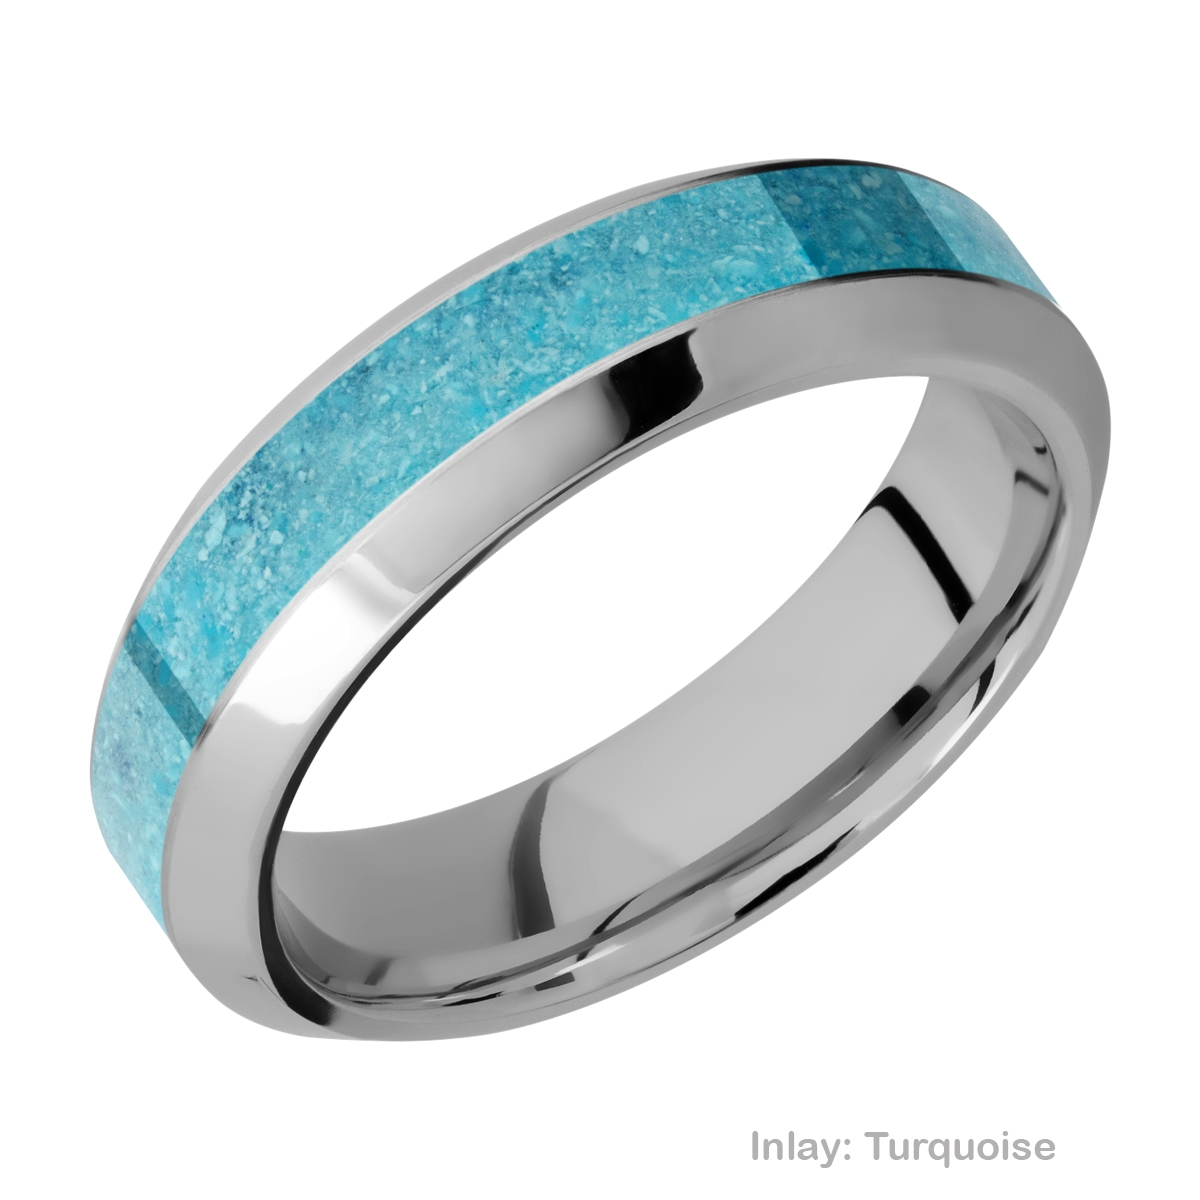 Lashbrook 6HB13/MOSAIC Titanium Wedding Ring or Band Alternative View 5